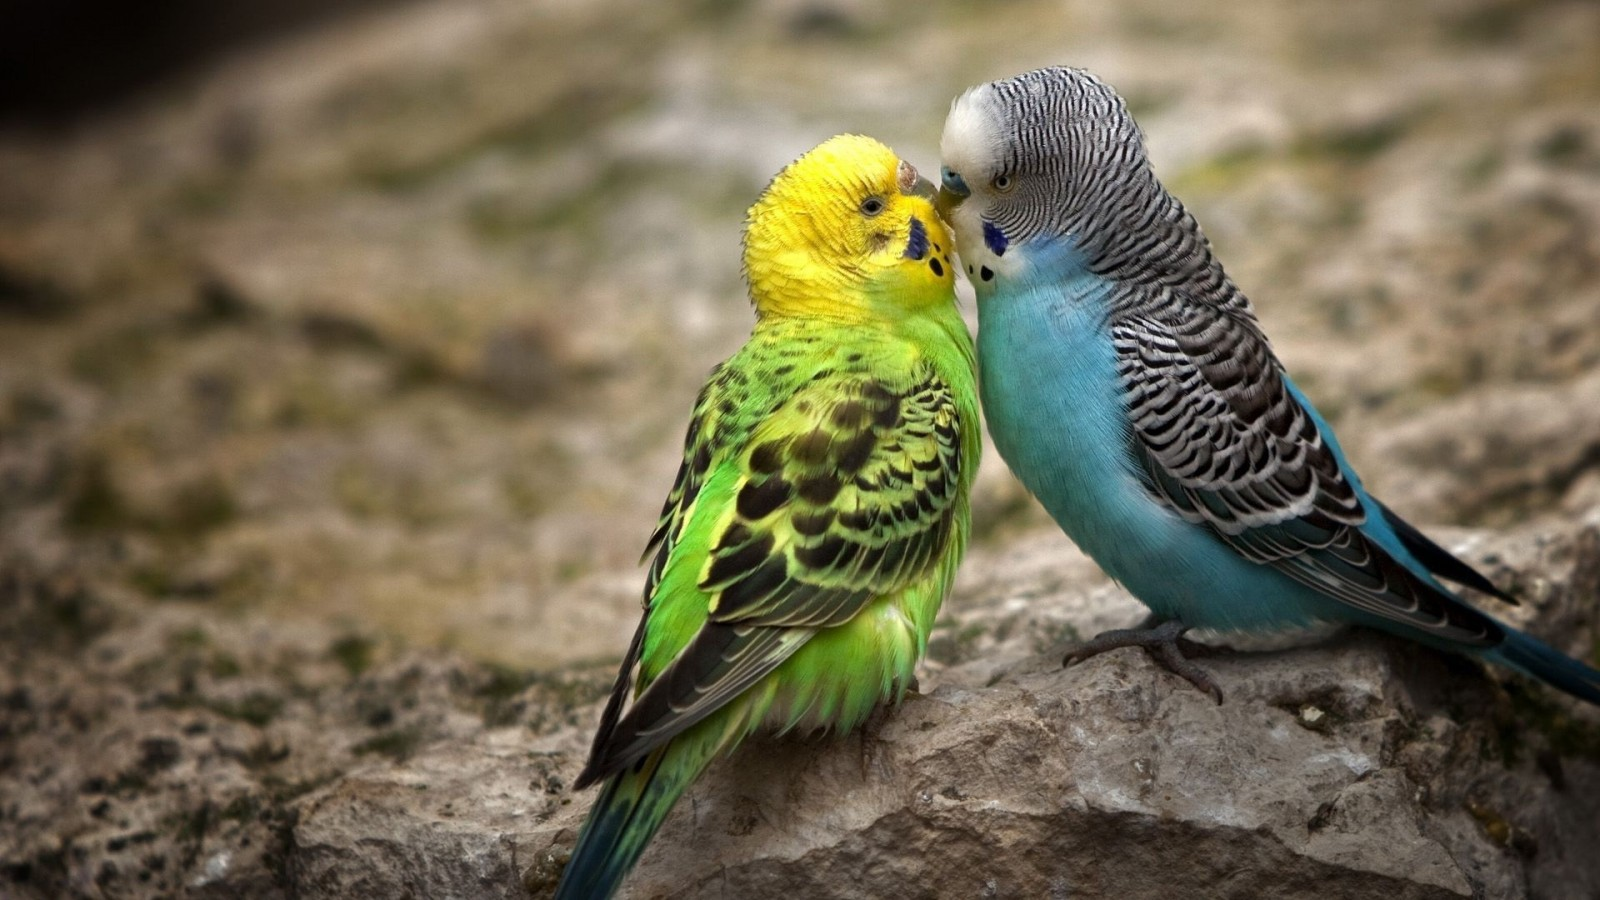 Budgie Wallpapers HD